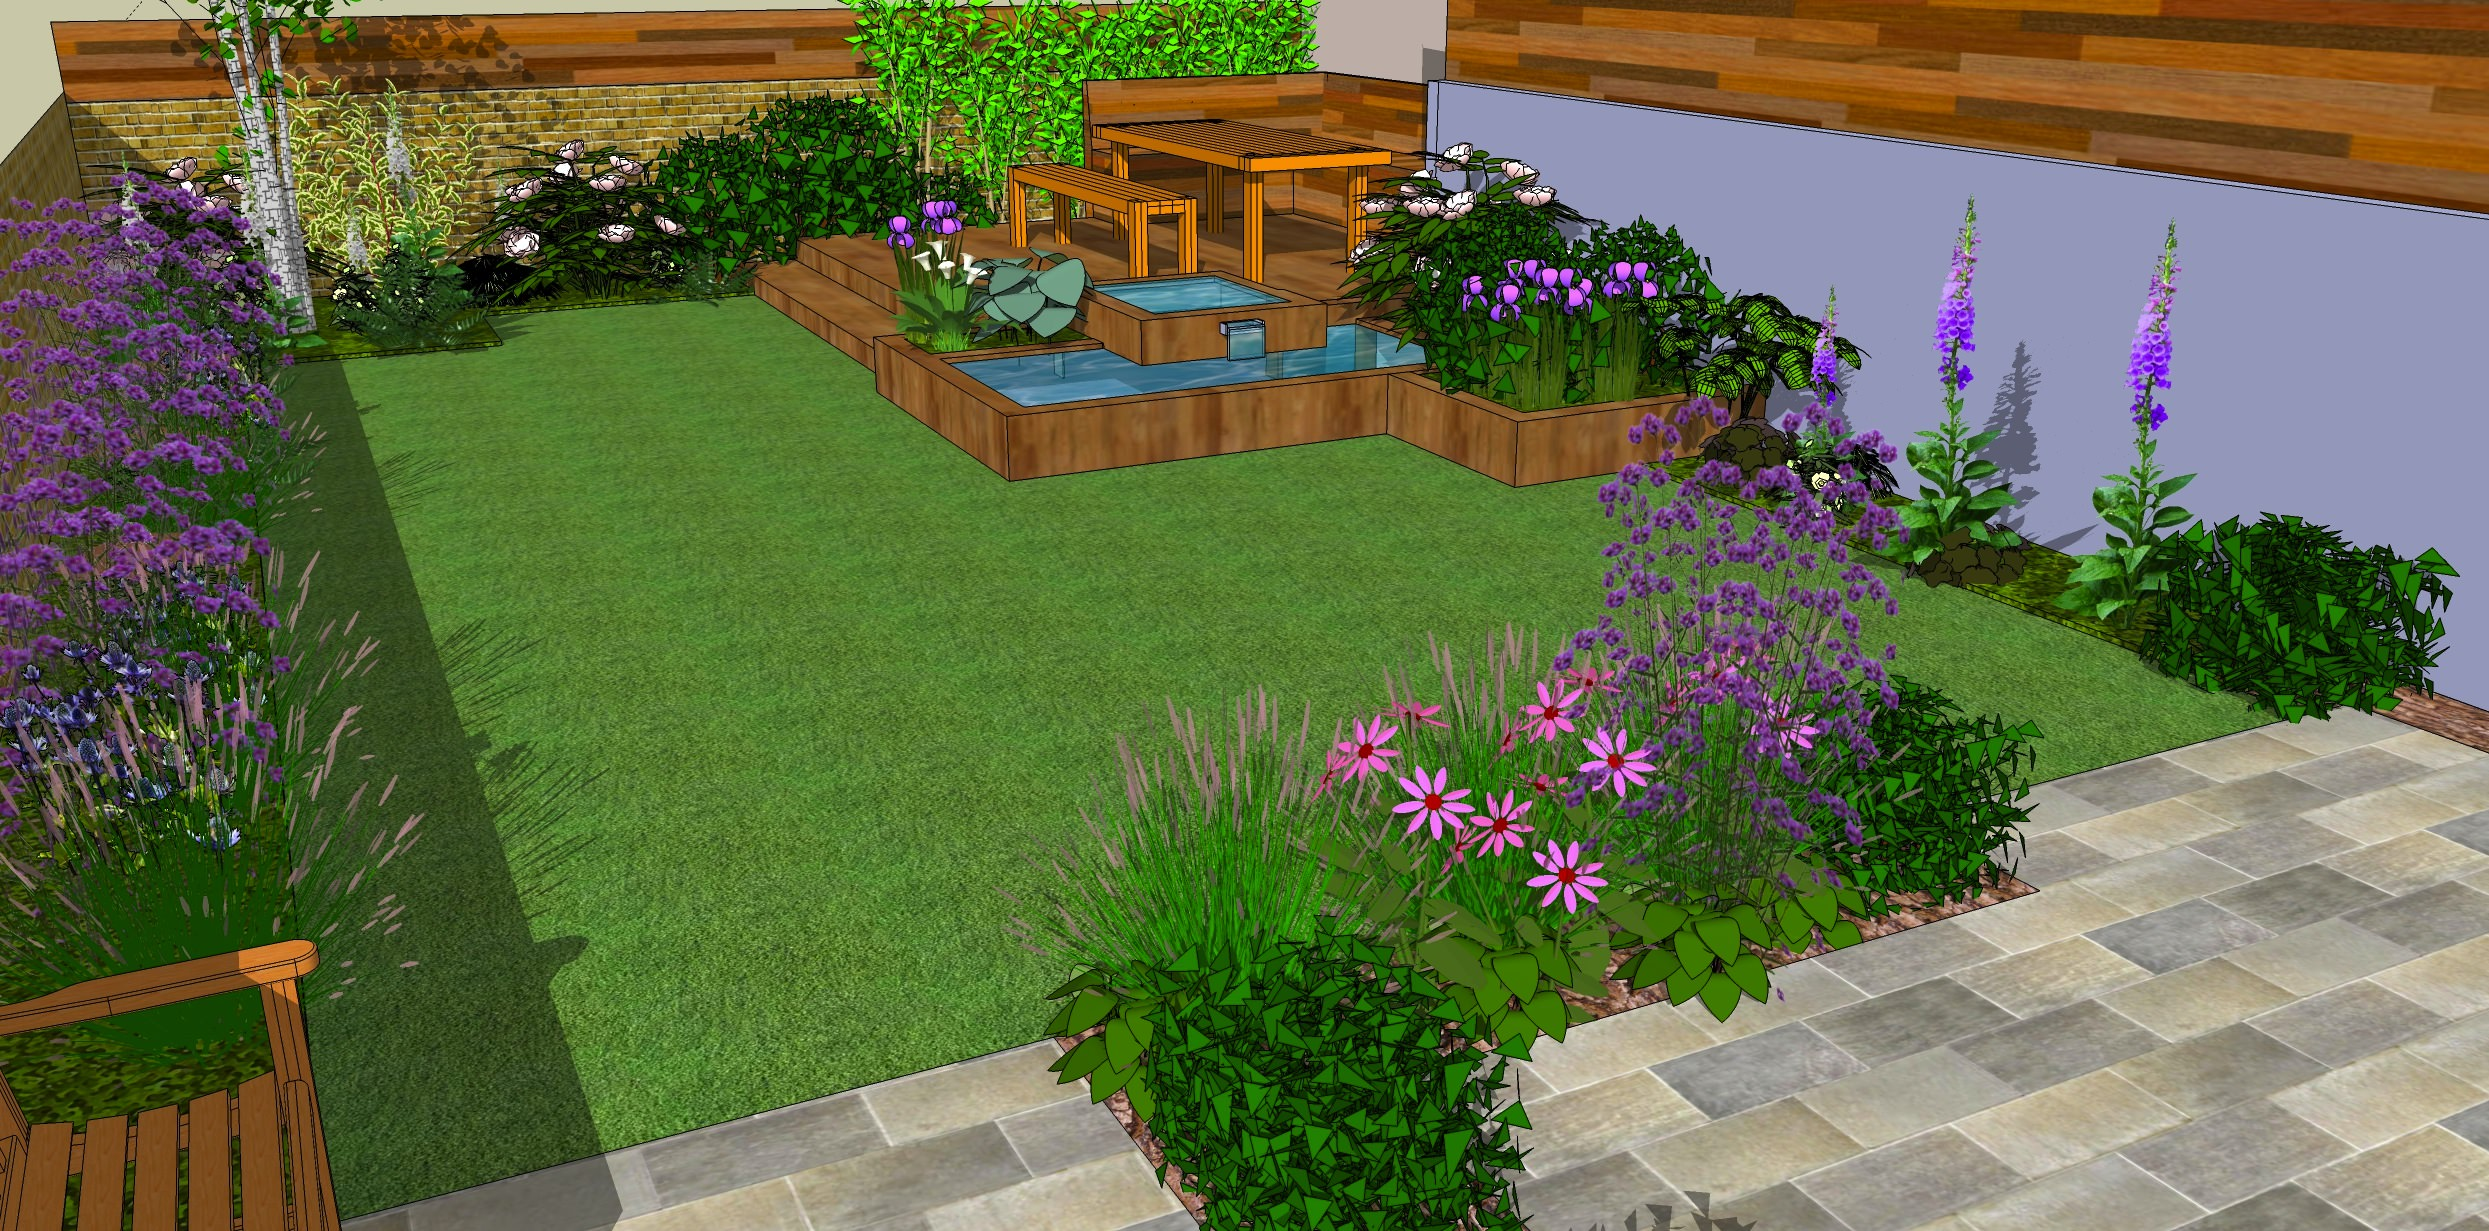 Low maintenance garden designs garden club london for Back garden designs uk